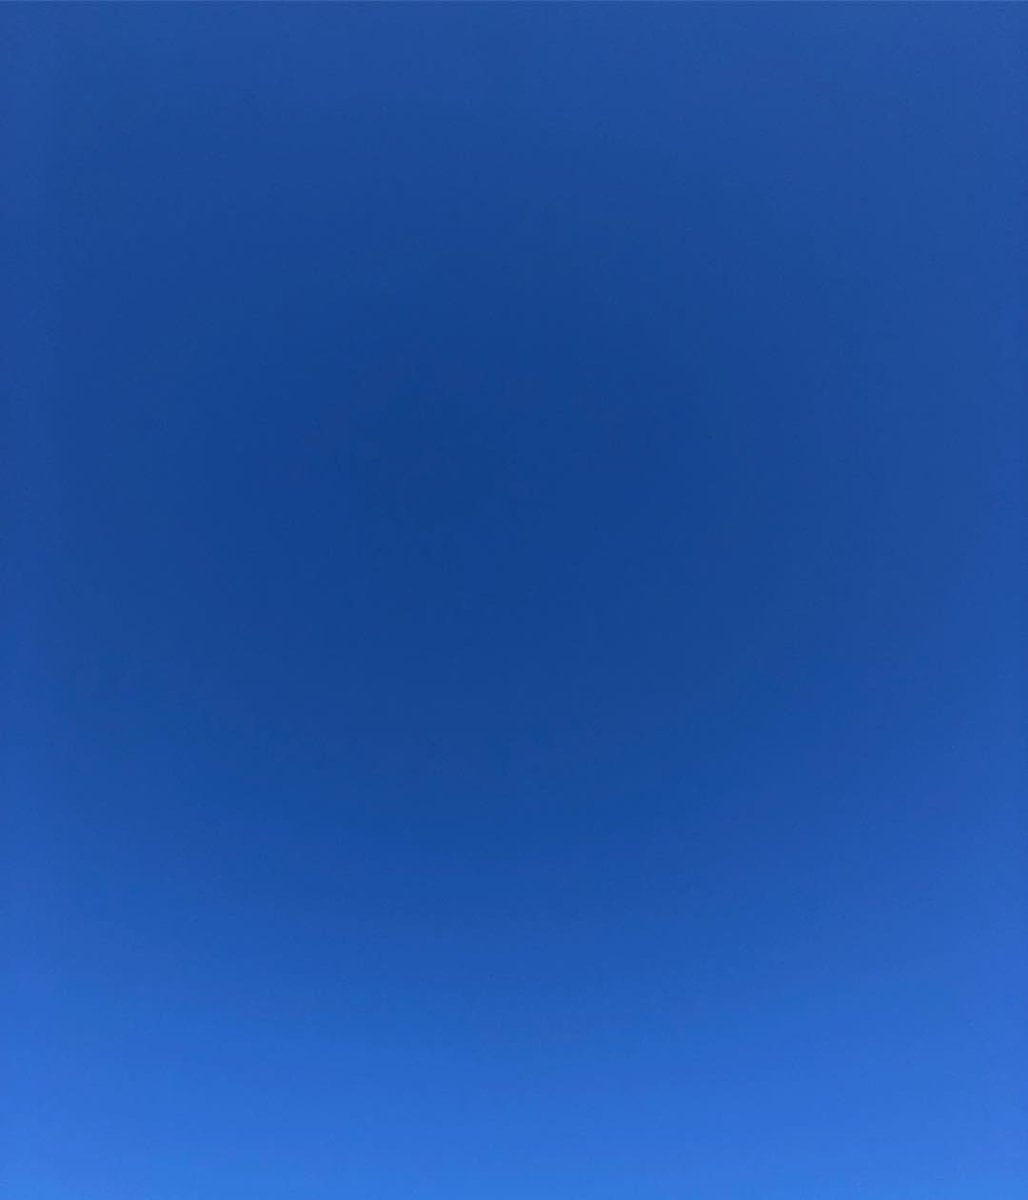 california. skies. https://t.co/AeGX9BGF7O